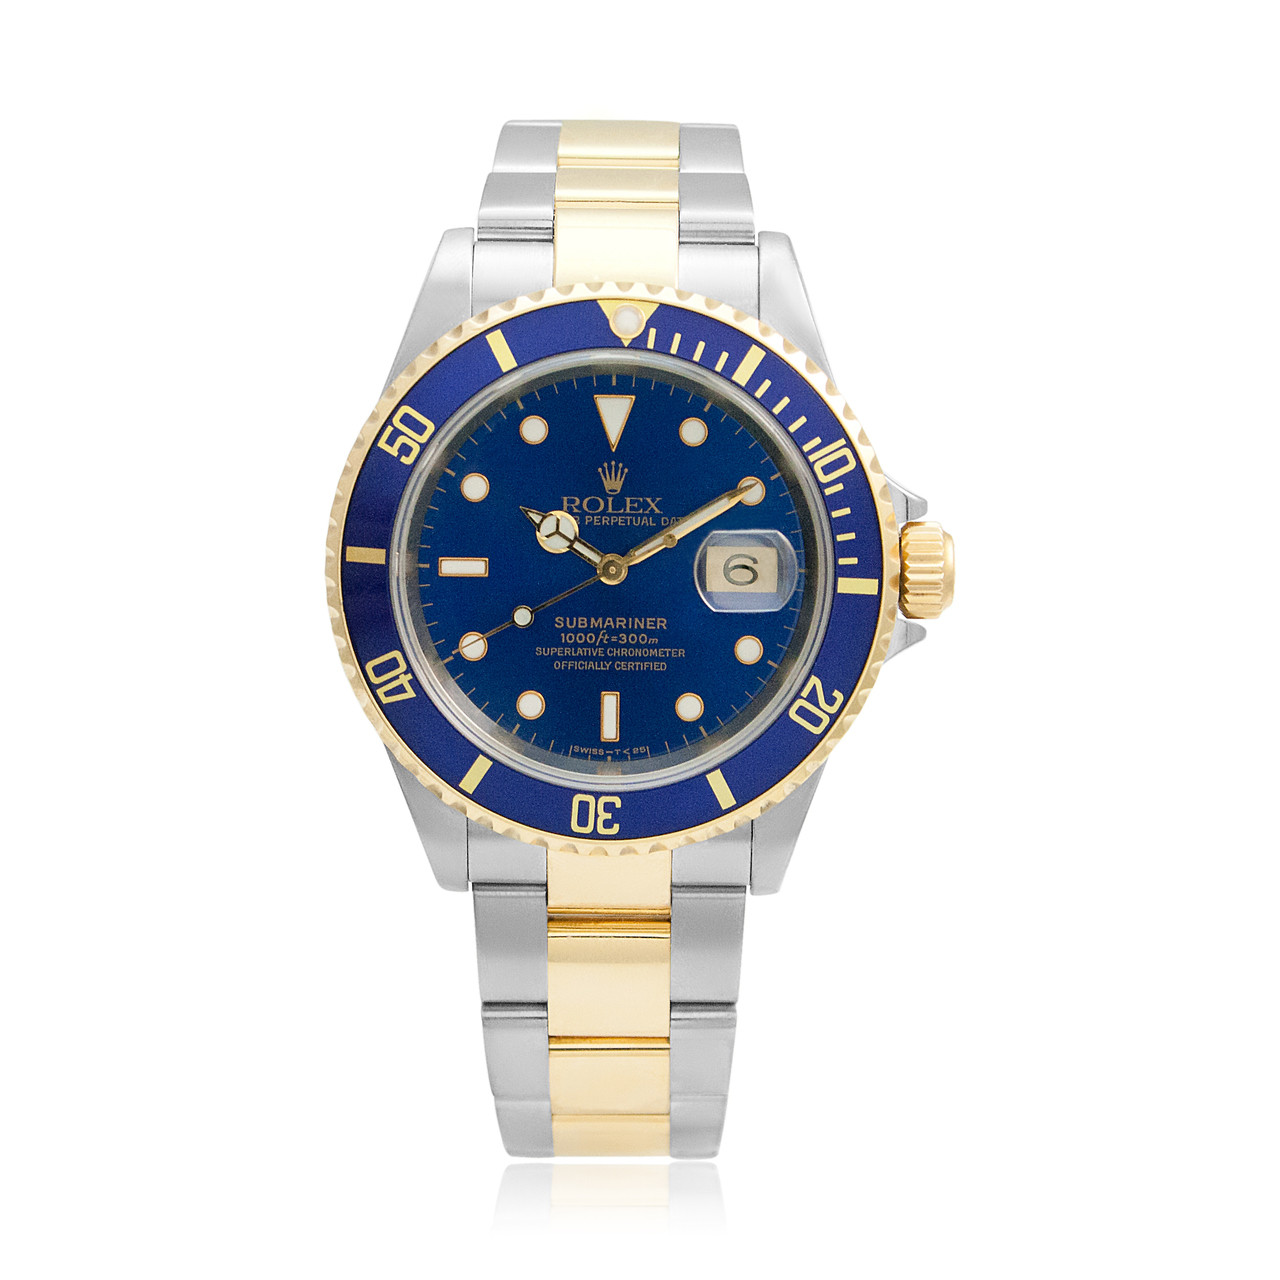 Rolex Submariner Stainless Steel 18k Gold Automatic Men S Watch